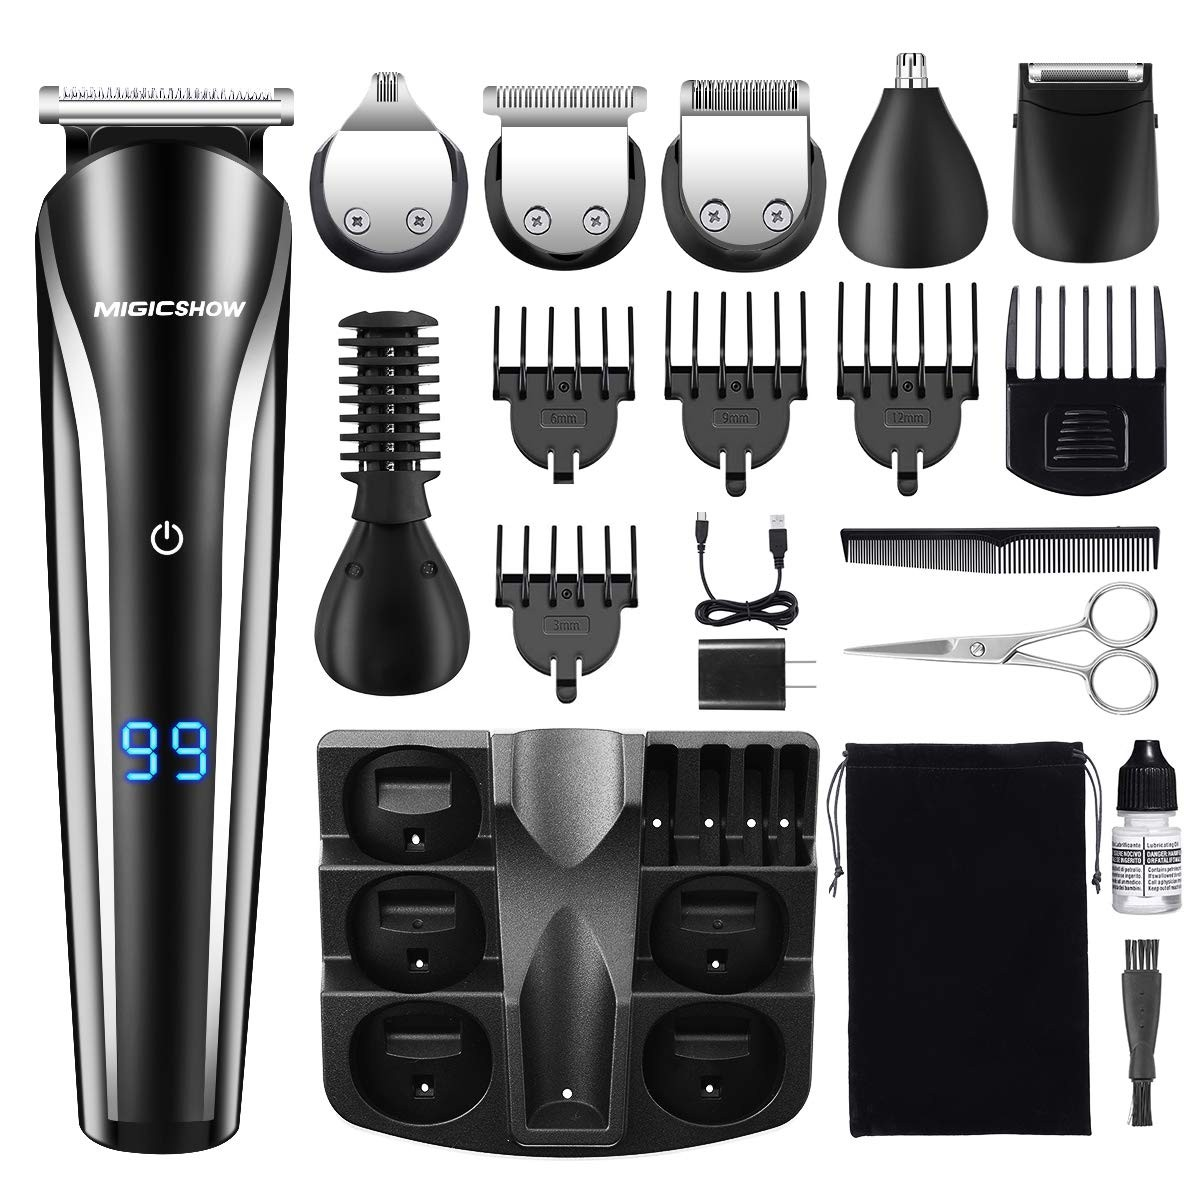 Beard Trimmer For Men, MIGICSHOW Cordless Hair Trimmer 11 in 1 Mustache Trimmer Hair Clippers